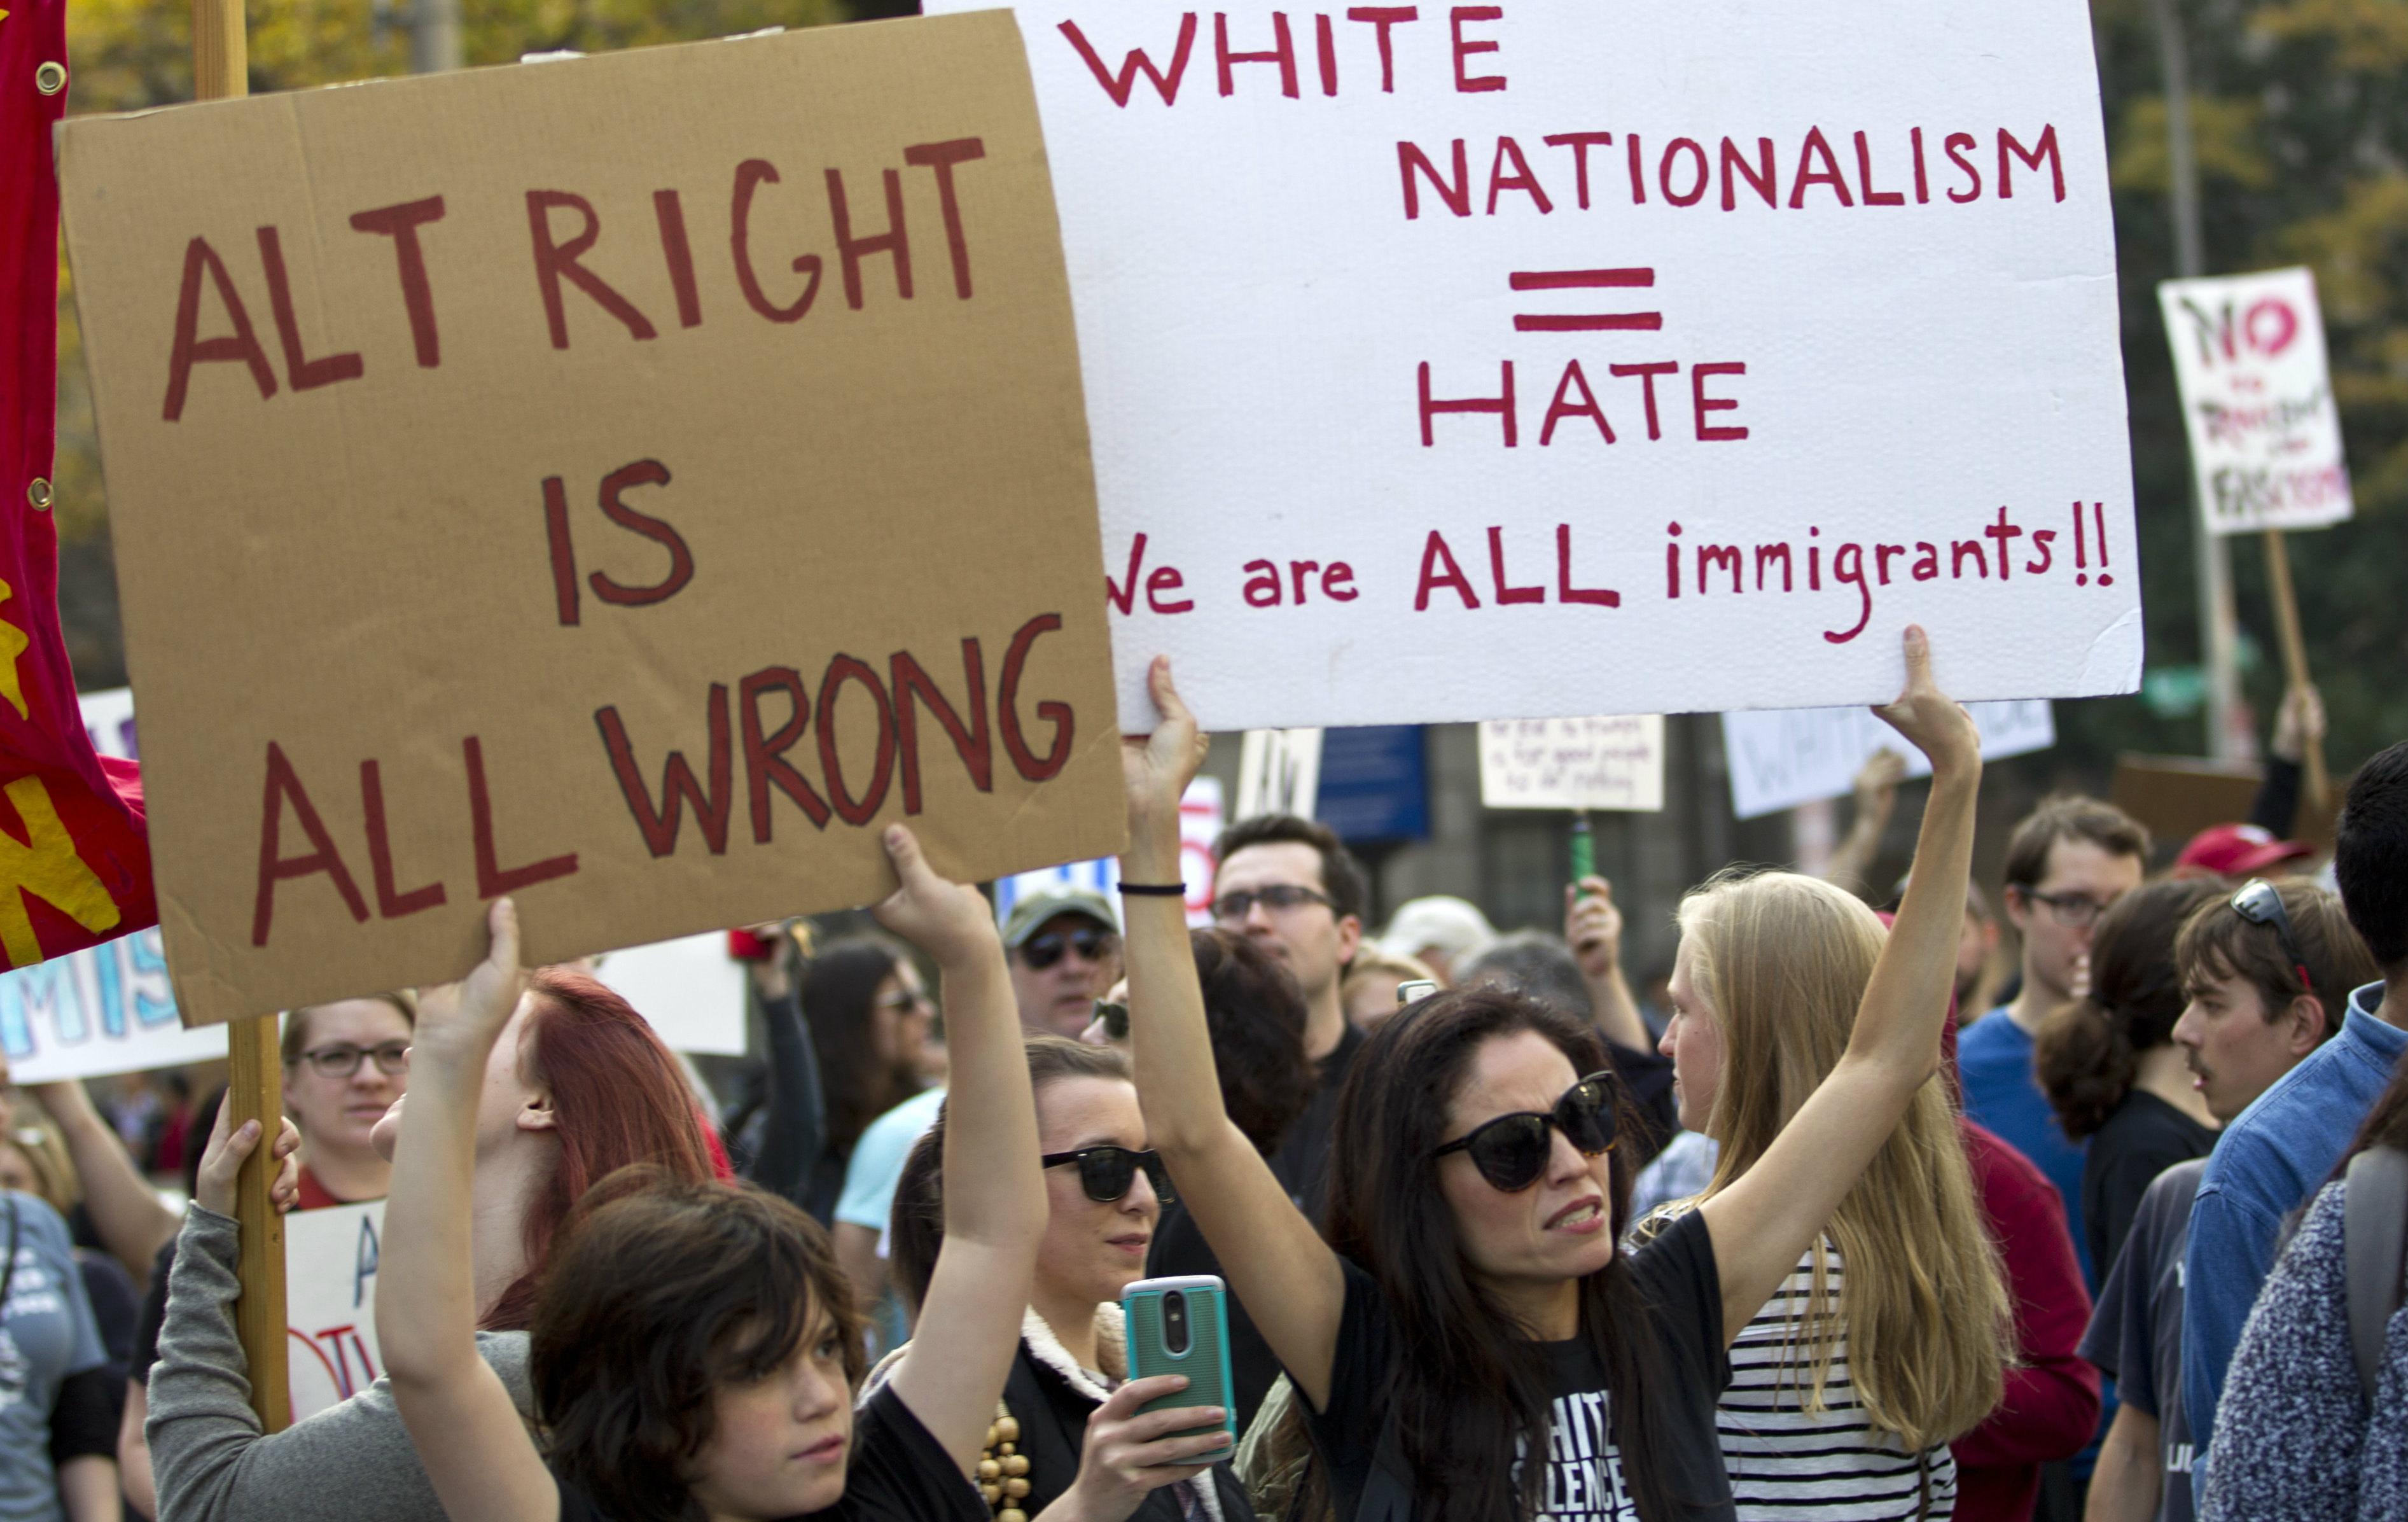 A woman and child holding up anti alt-right signs.